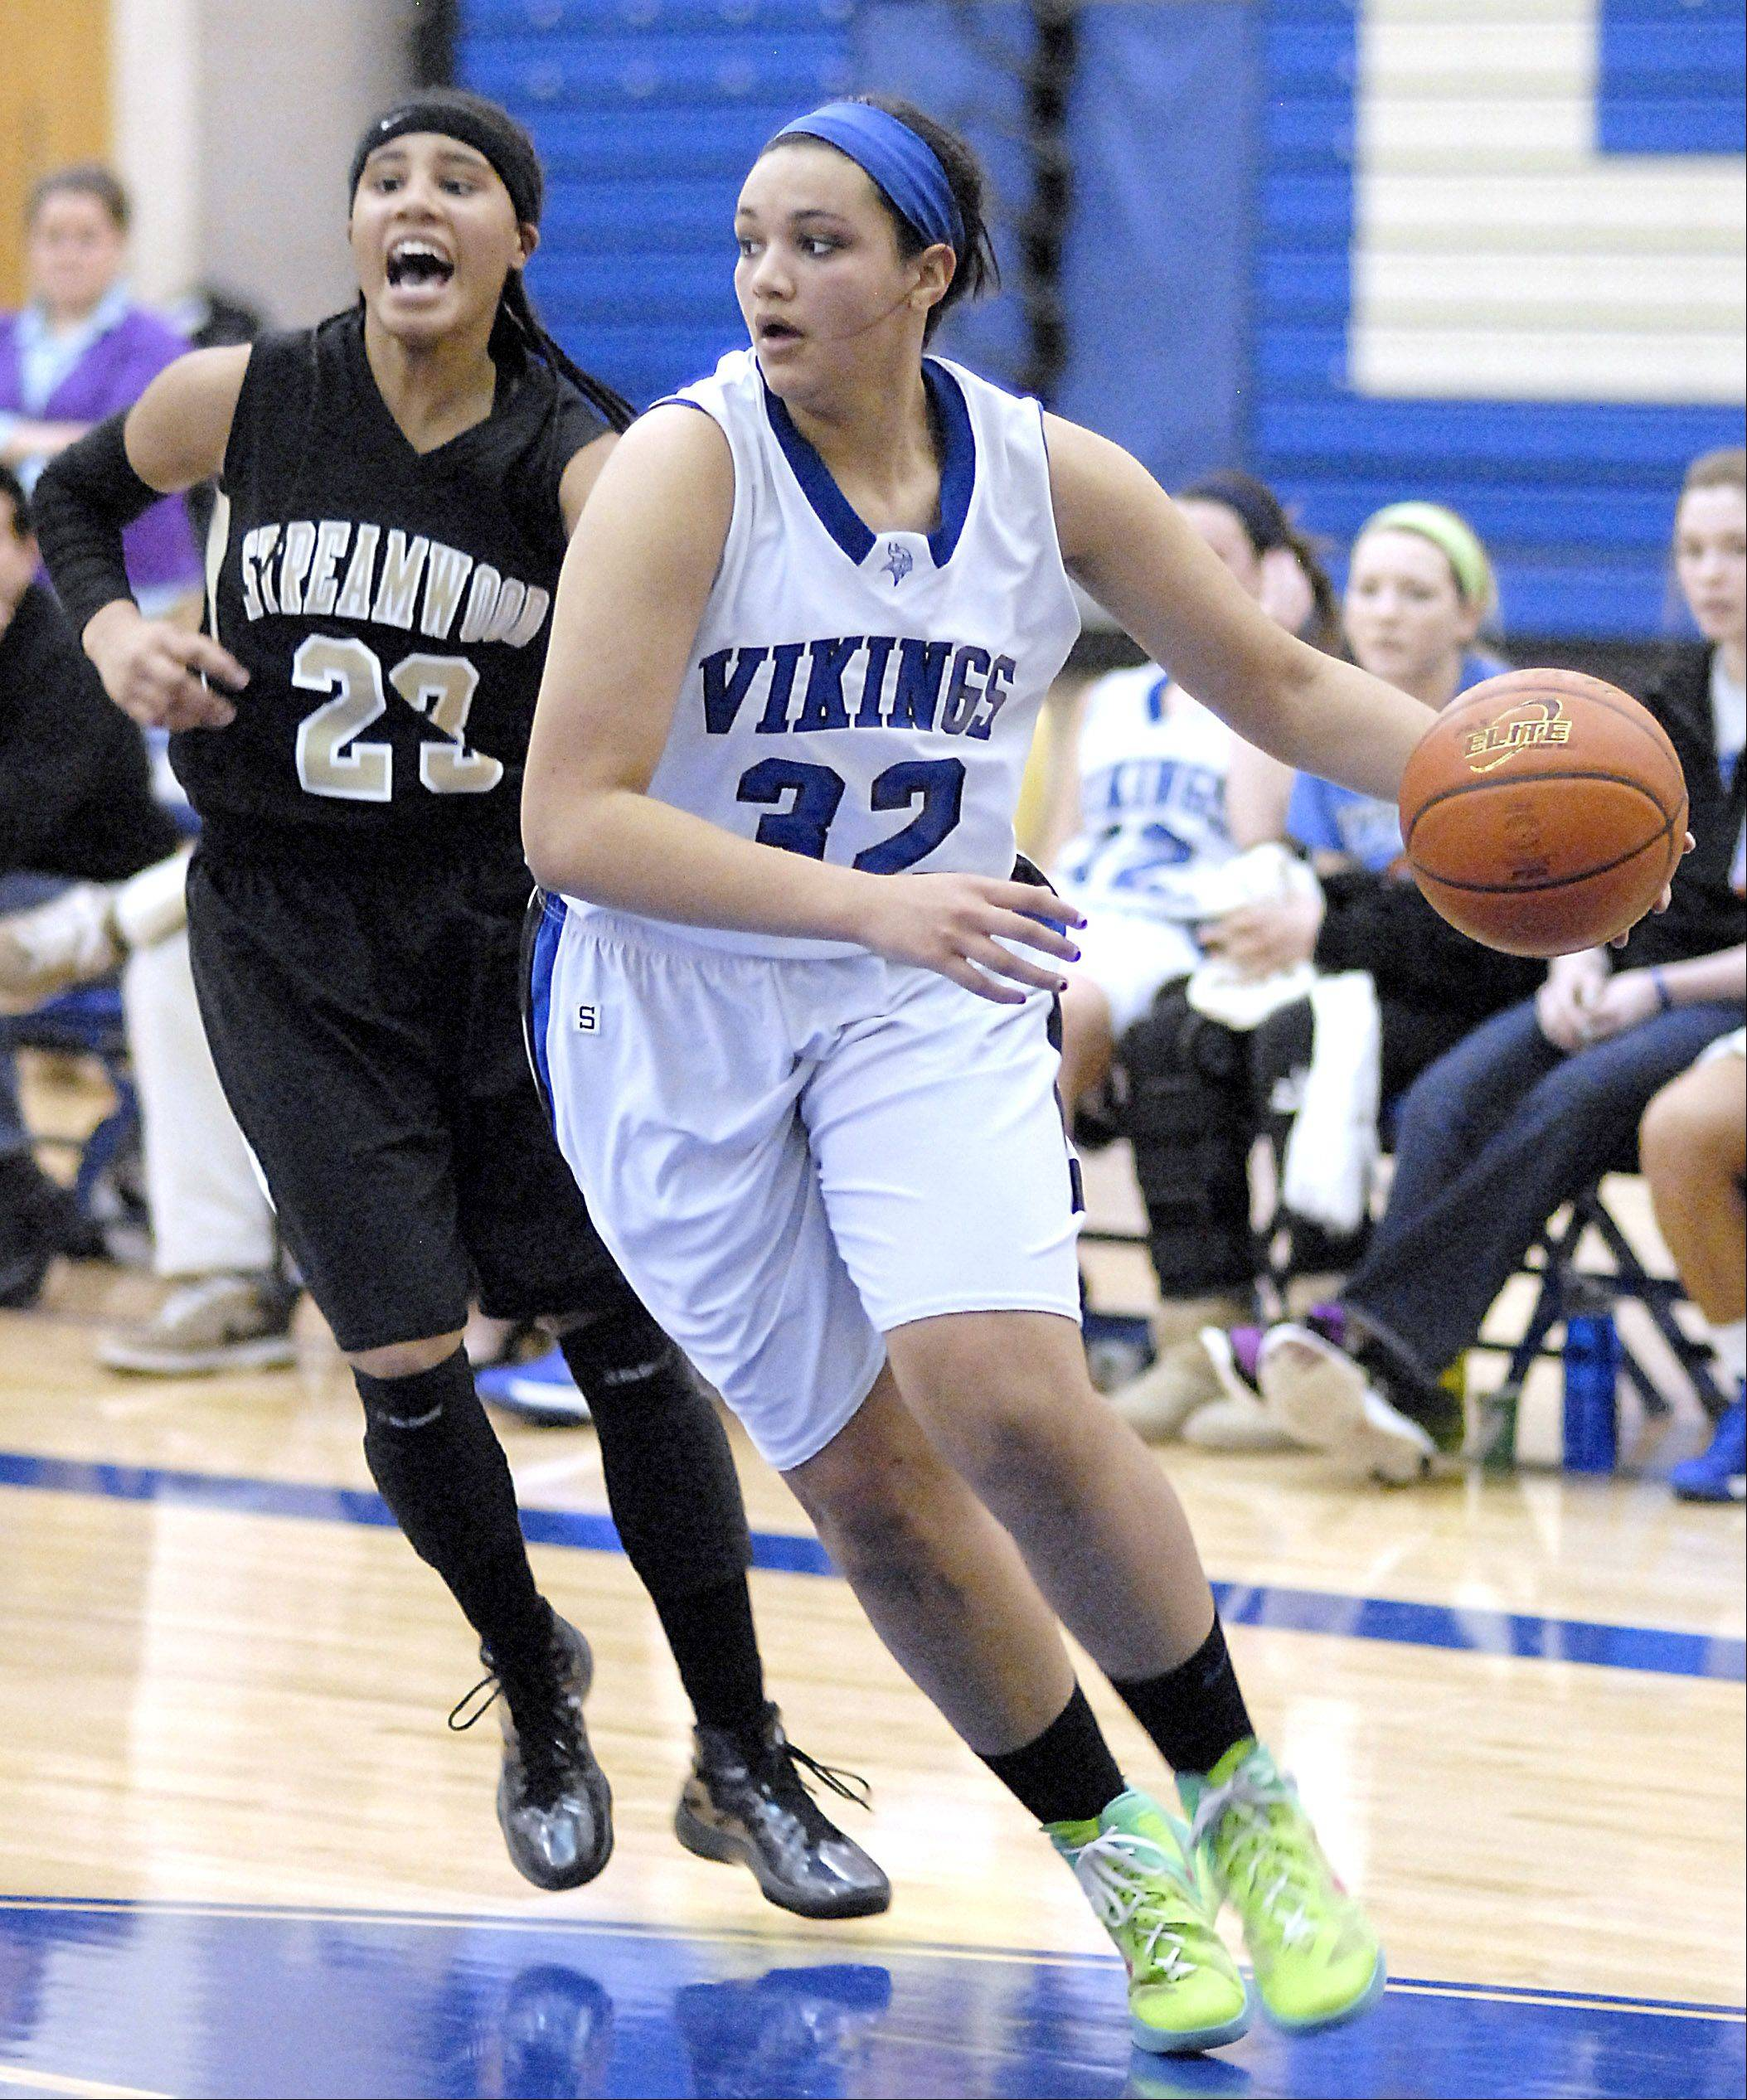 Geneva's Sidney Santos decided on Oakland University to play college basketball.